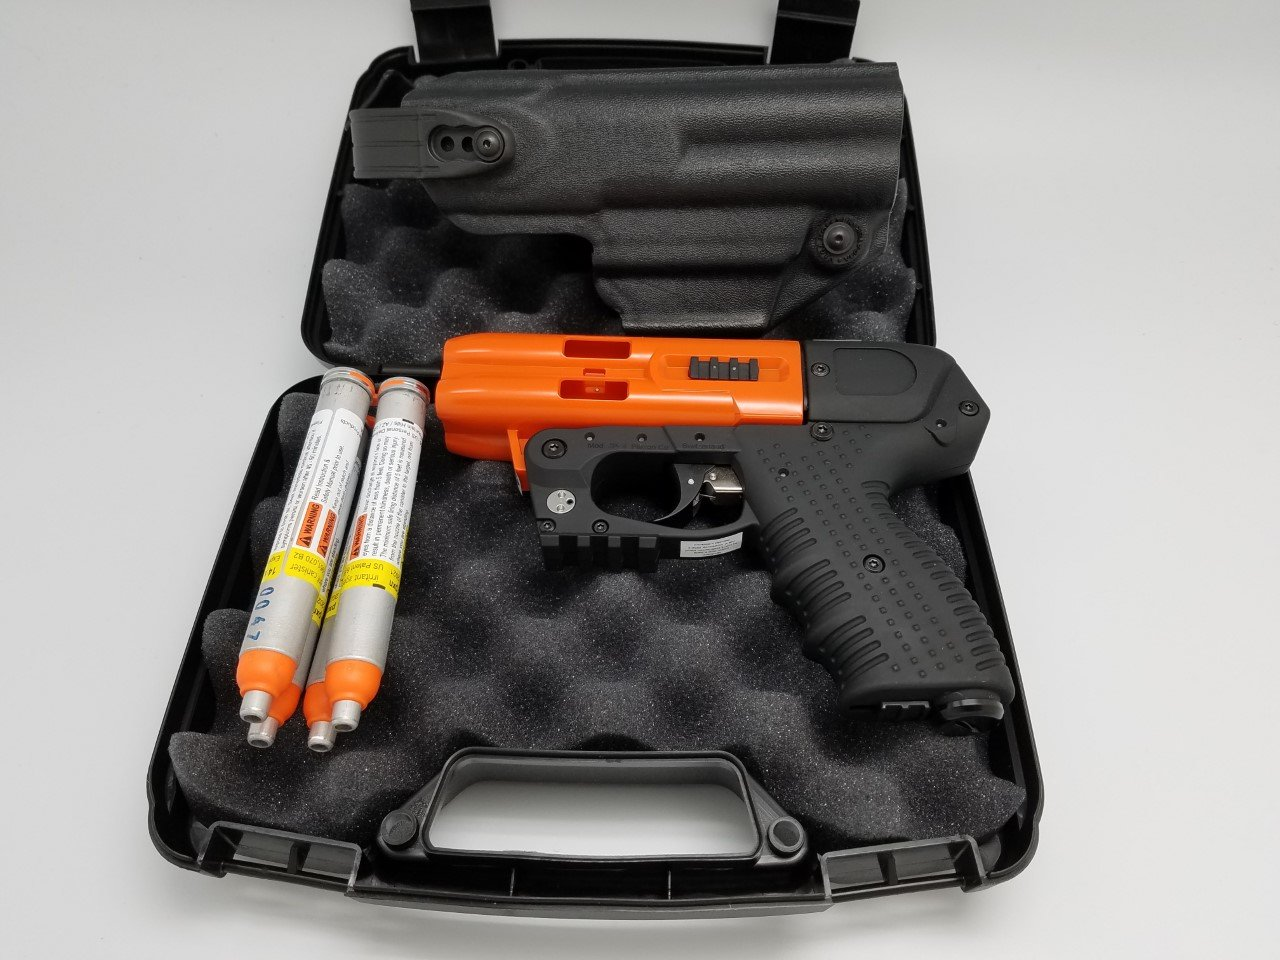 Piexon AG 4 Shot LED Laser Pepper Spray Gun Orange Bundle with Level 2 Holster by Piexon AG (Image #1)